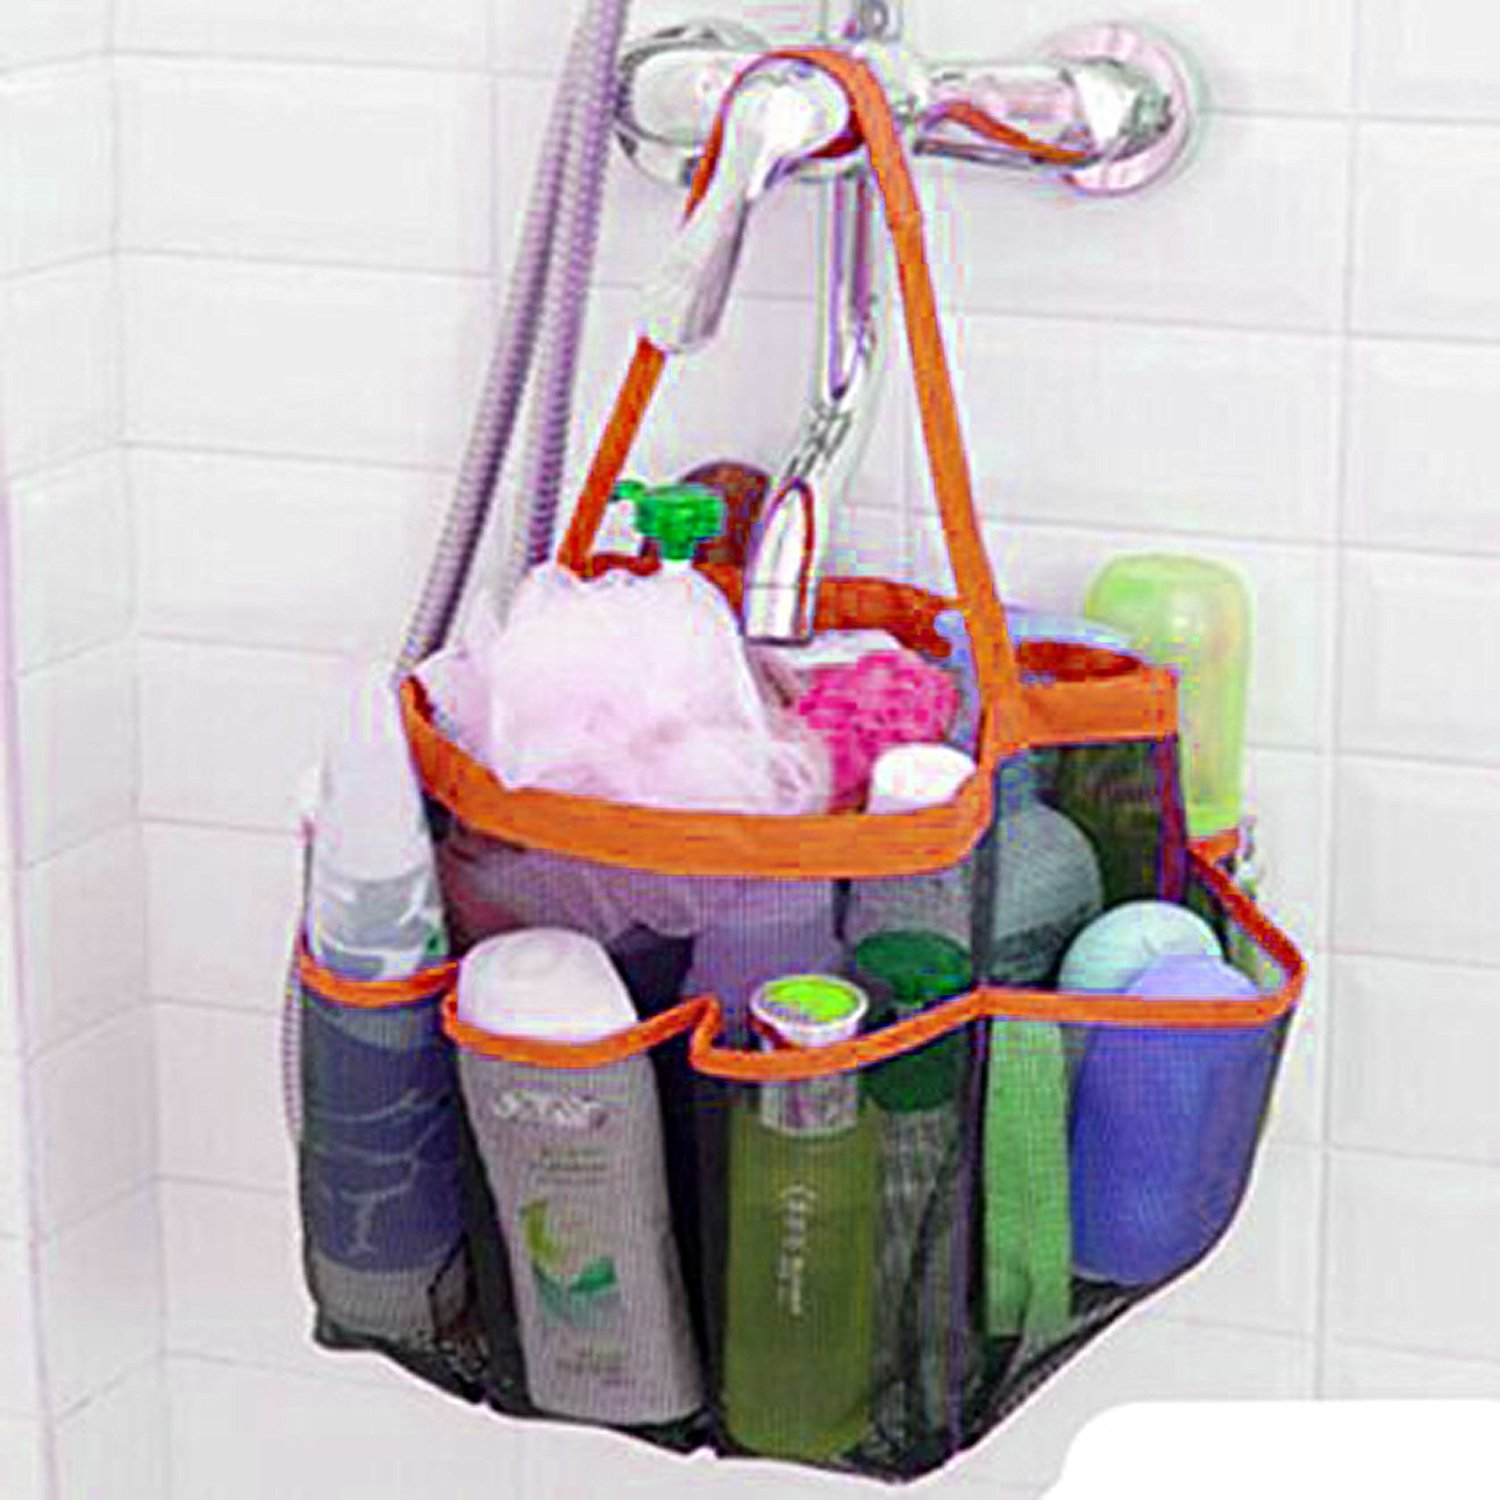 Buy Flexible Quick Dry shower caddy organizer/ 8 pockets with 1 ...